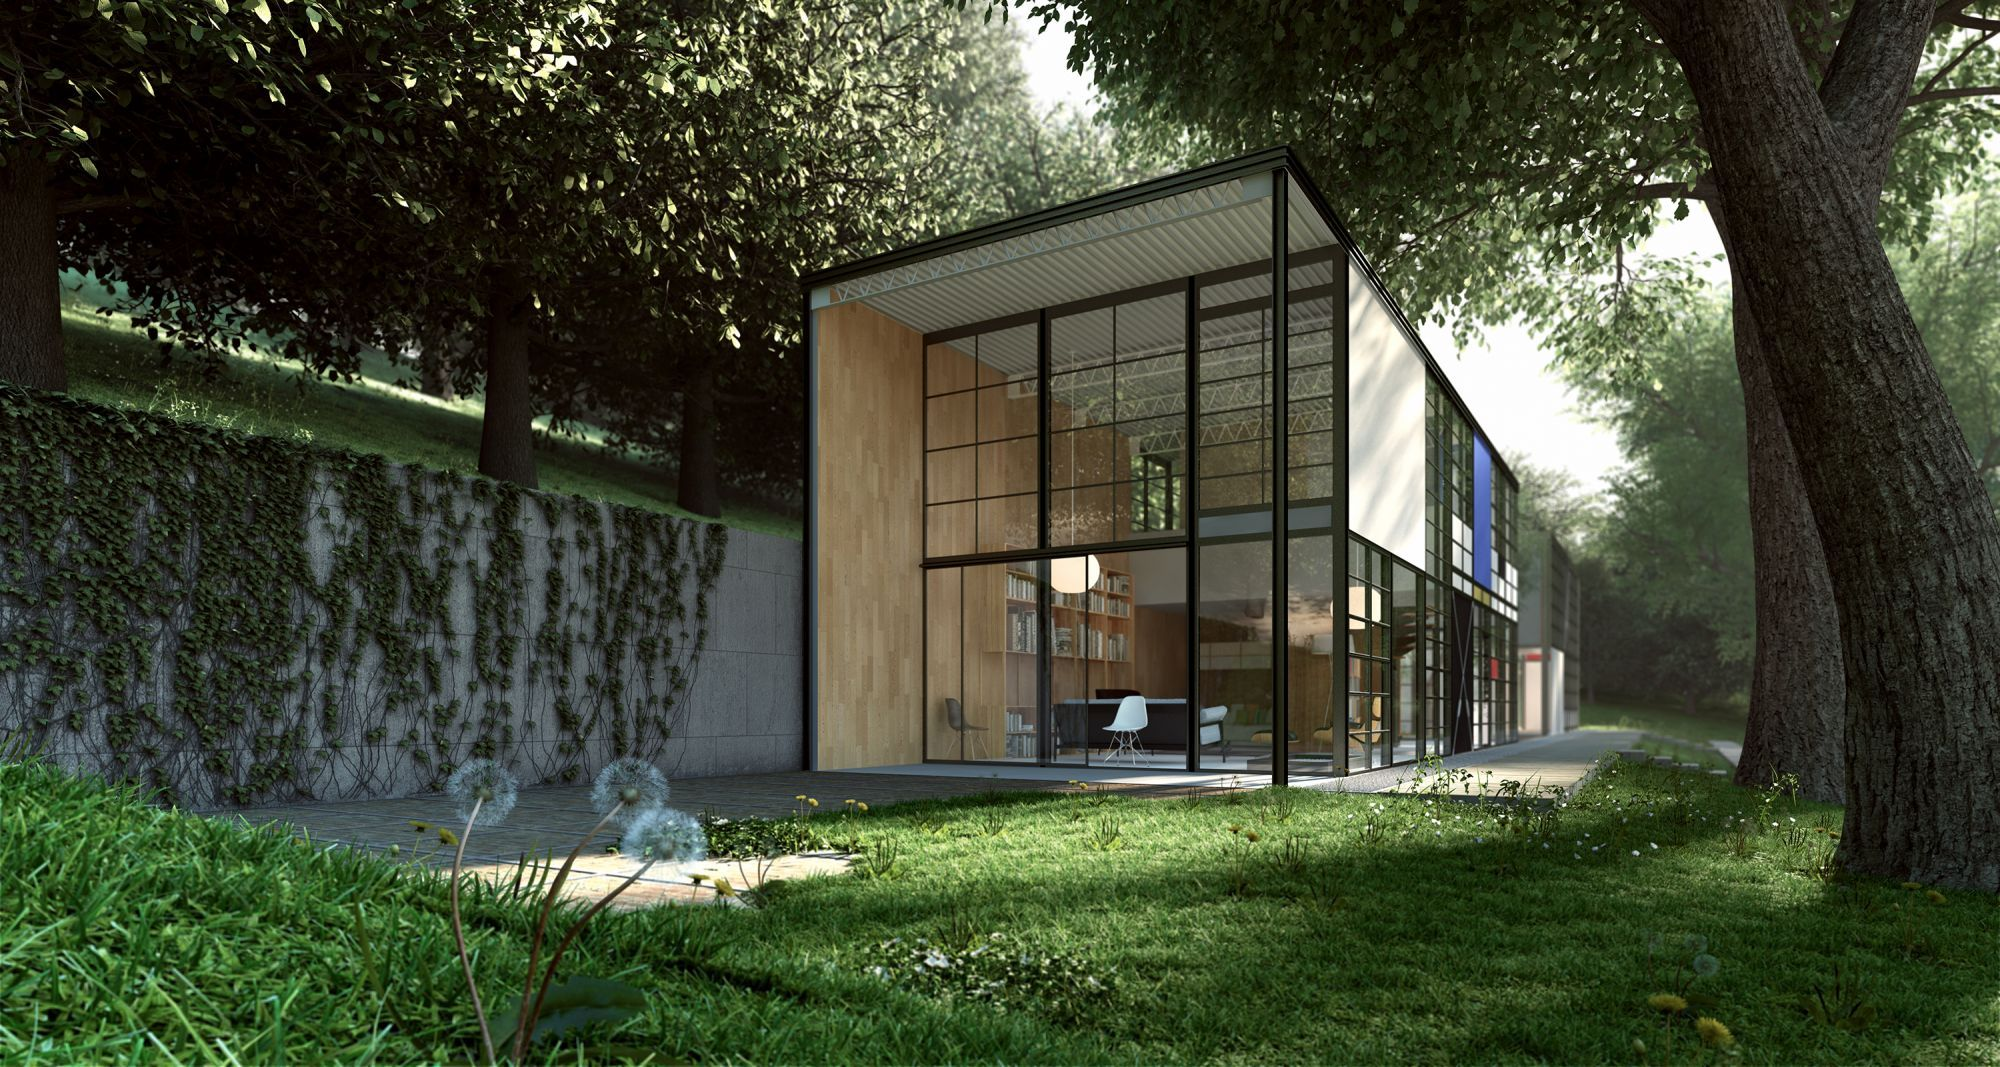 eames house by charles and ray eames los angeles california 1949 architecture pinterest. Black Bedroom Furniture Sets. Home Design Ideas